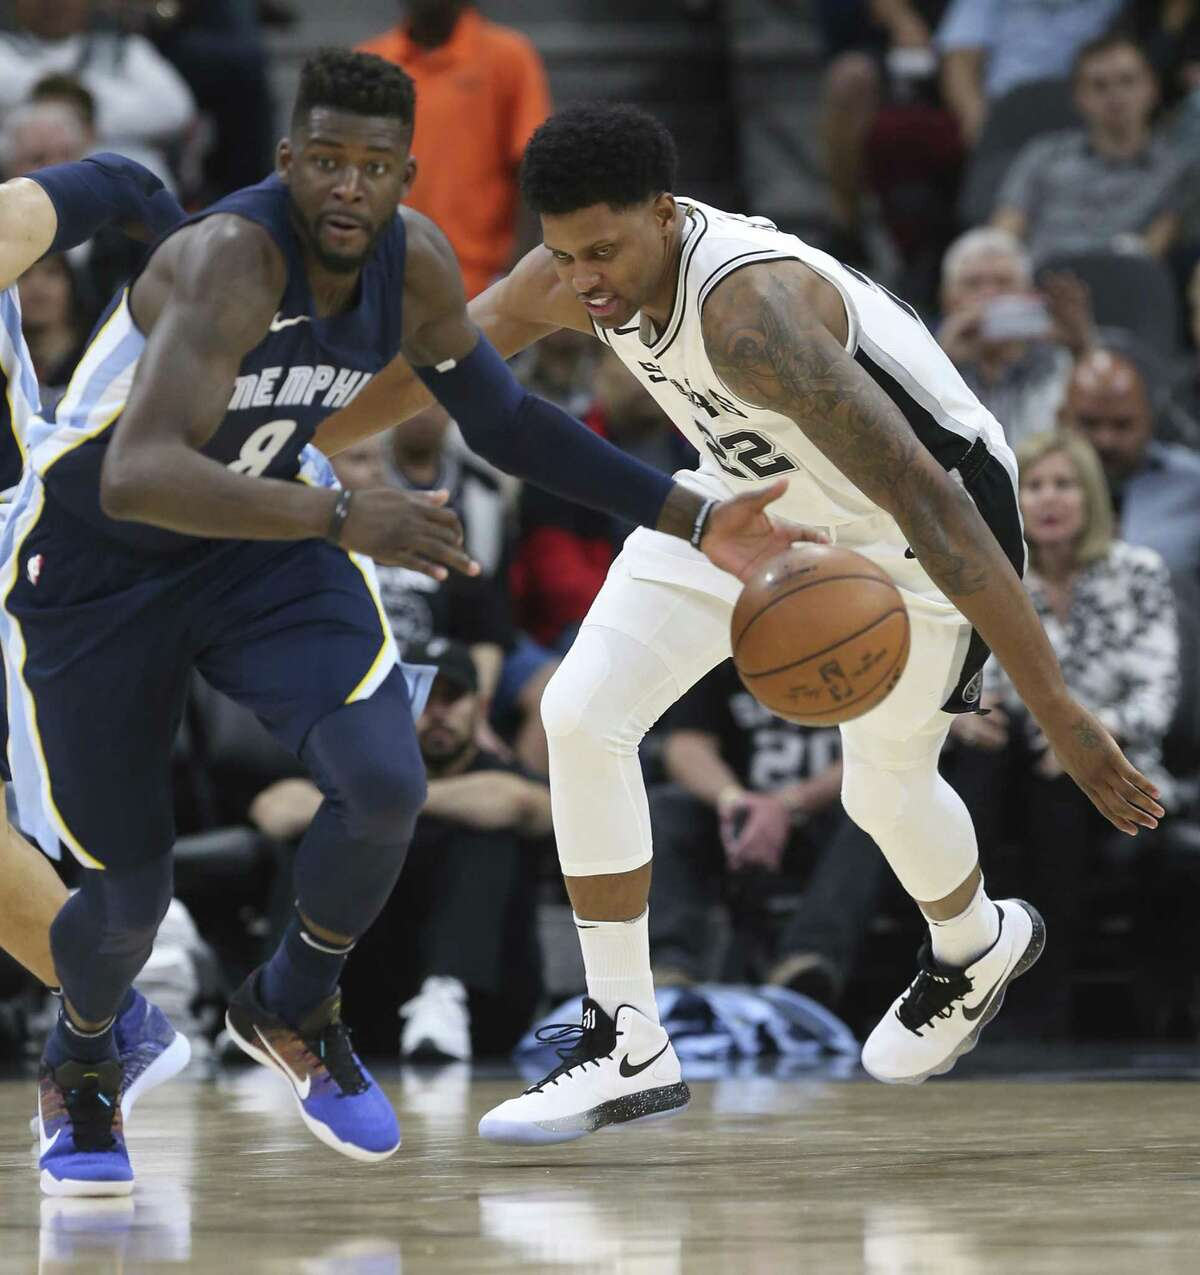 San Antonio Spurs?' Rudy Gay chases Memphis Grizzlies?' James Ennis III during the second half at the AT&T Center, Wednesday, Nov. 29, 2017. The Spurs won 104-95.